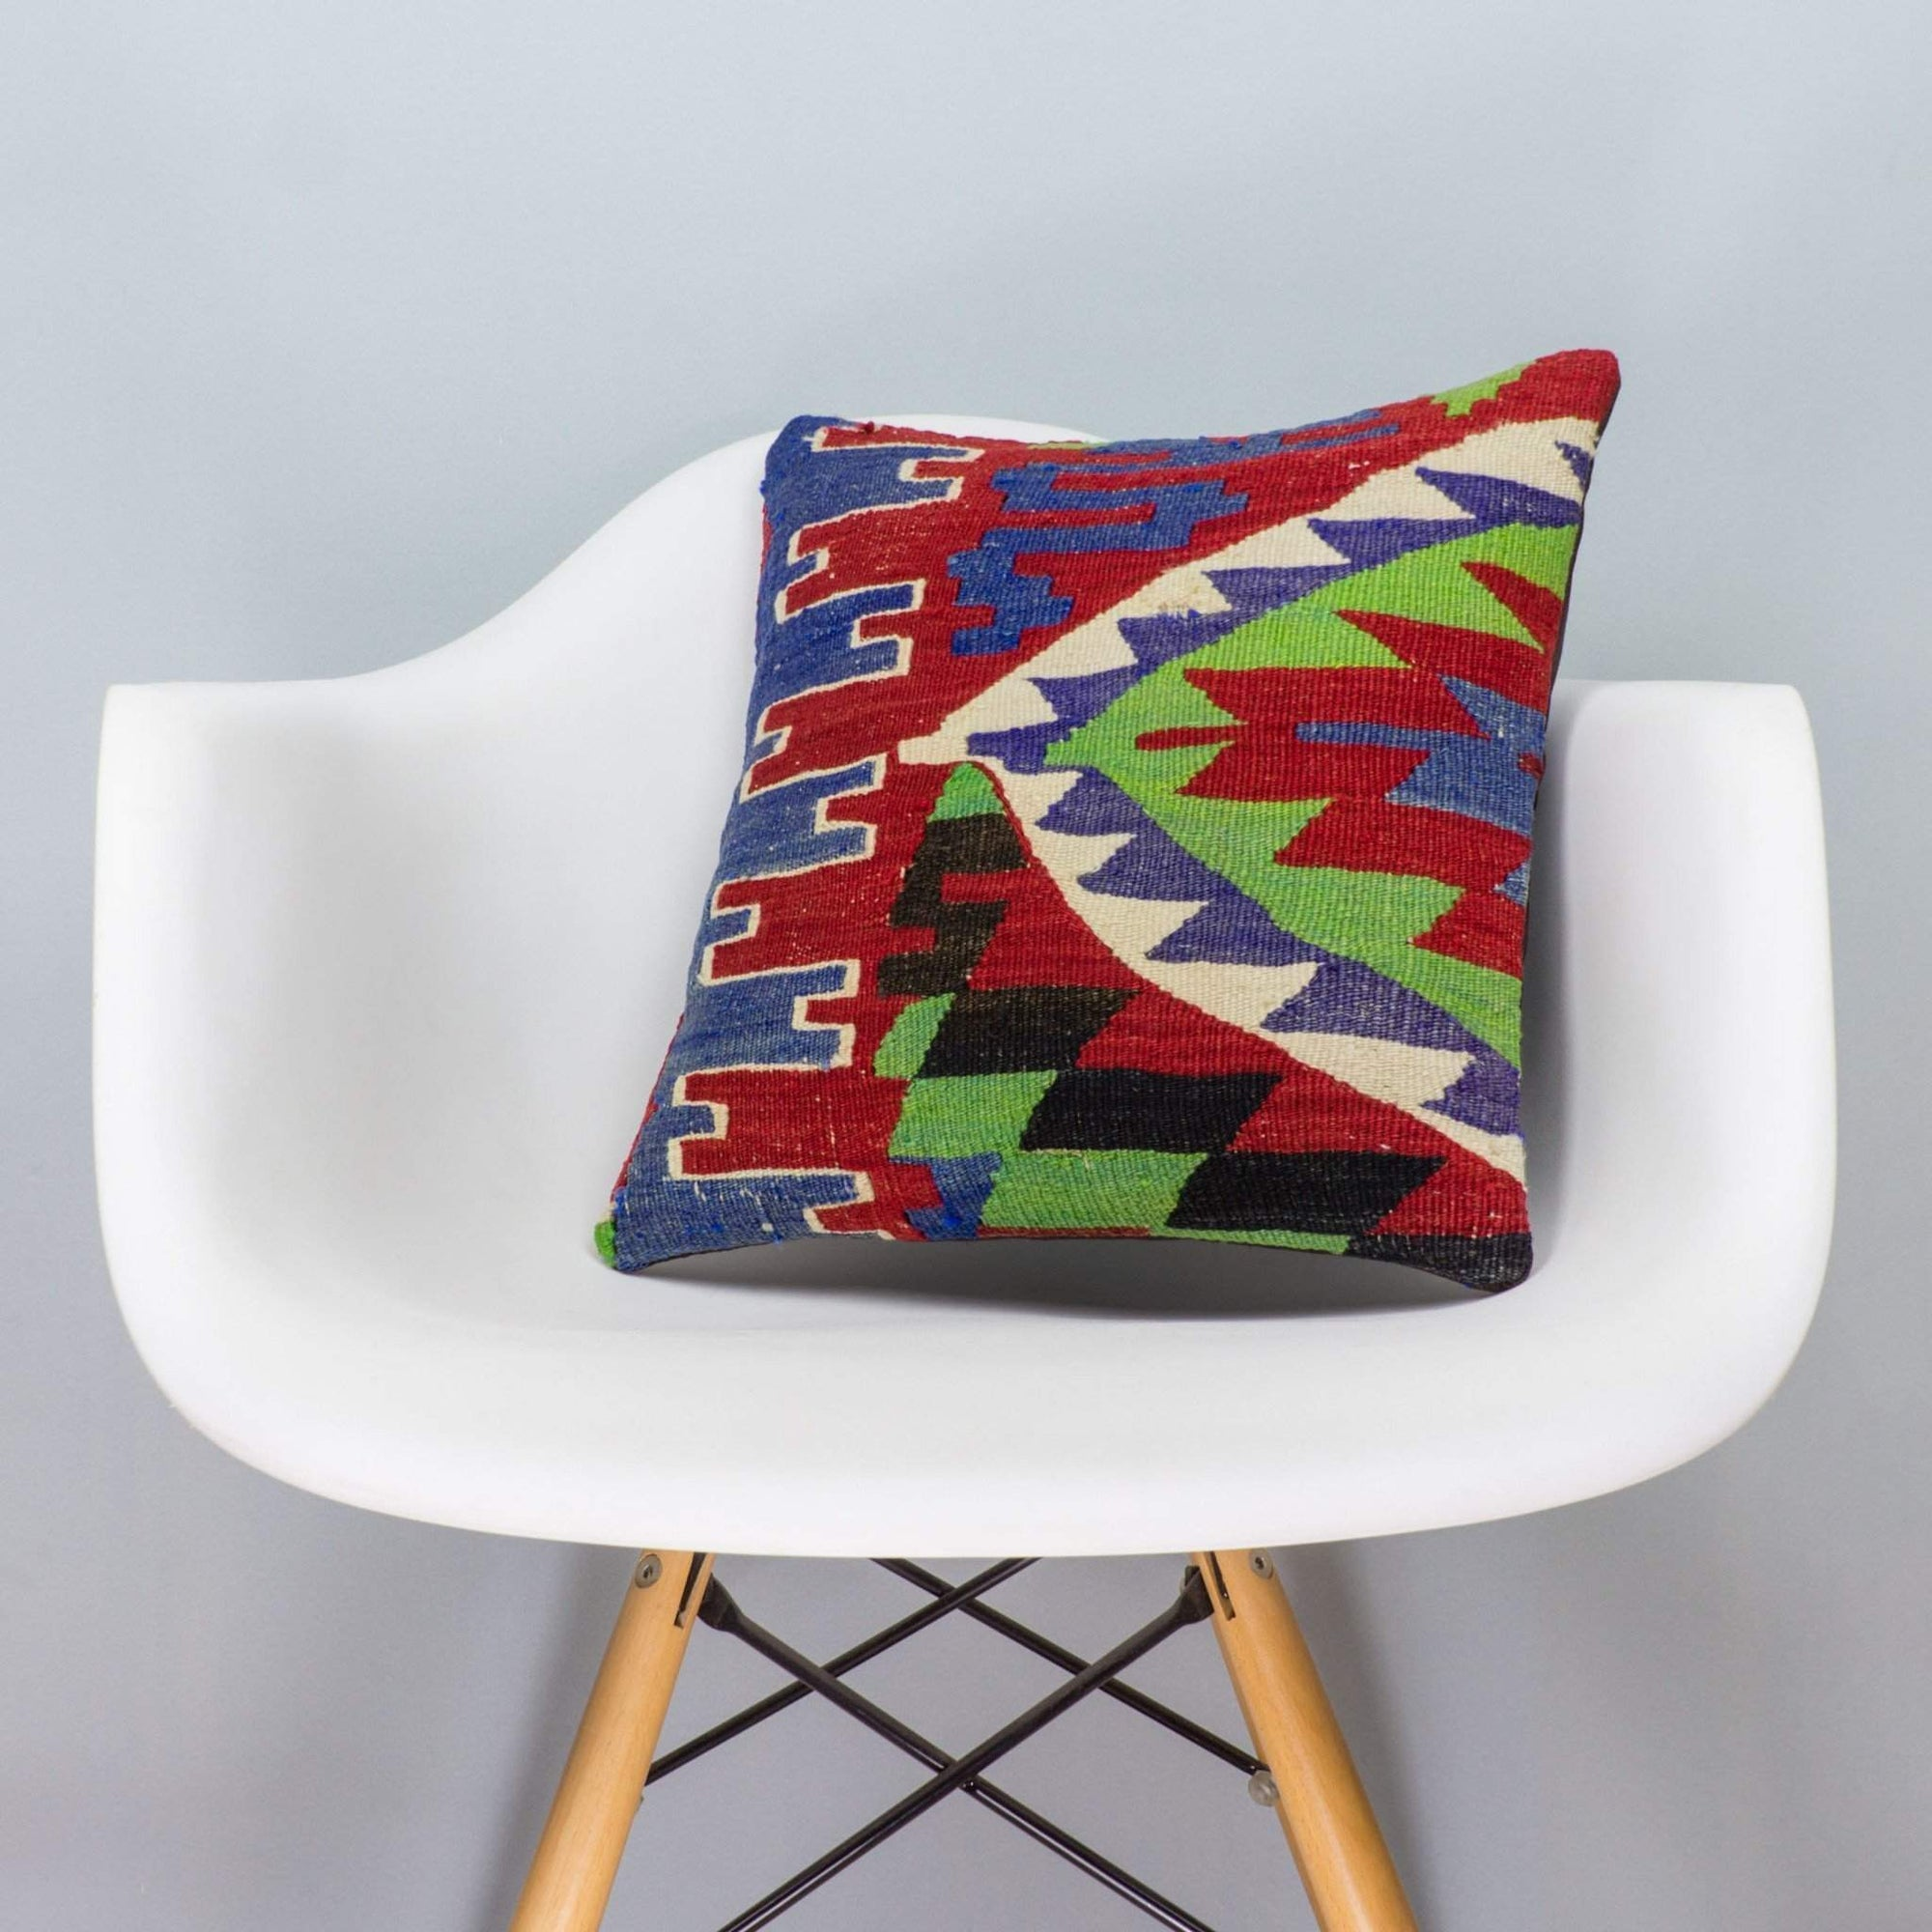 Chevron Multi Color Kilim Pillow Cover 16x16 3284 - kilimpillowstore  - 1